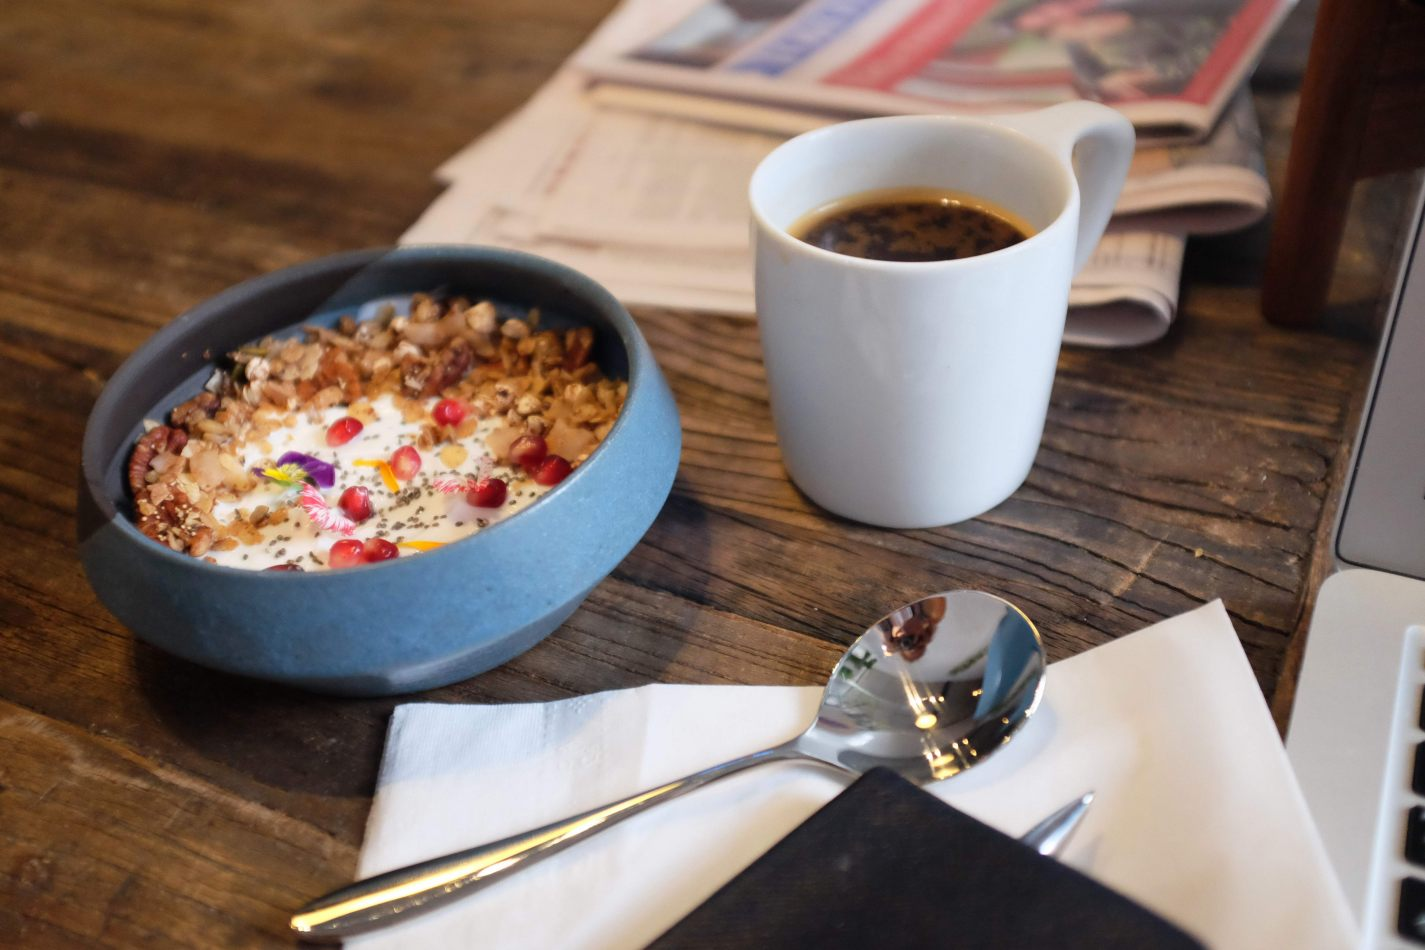 Hibiscus & Nomada : Canada - Granola Parfait & Coffee at Early Bird Café